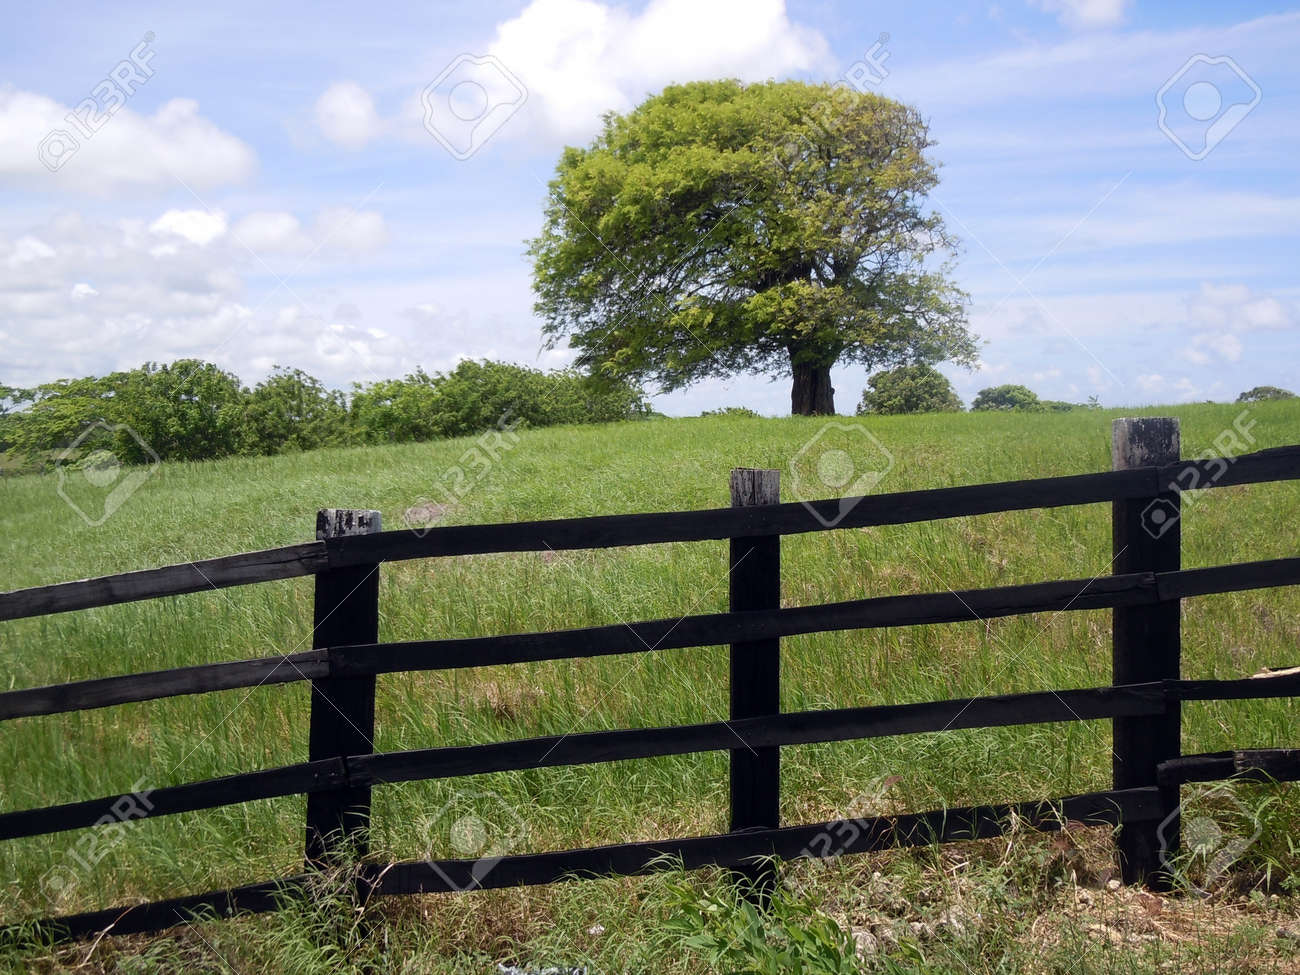 Black fence, tree and green farm field Stock Photo - 7786037